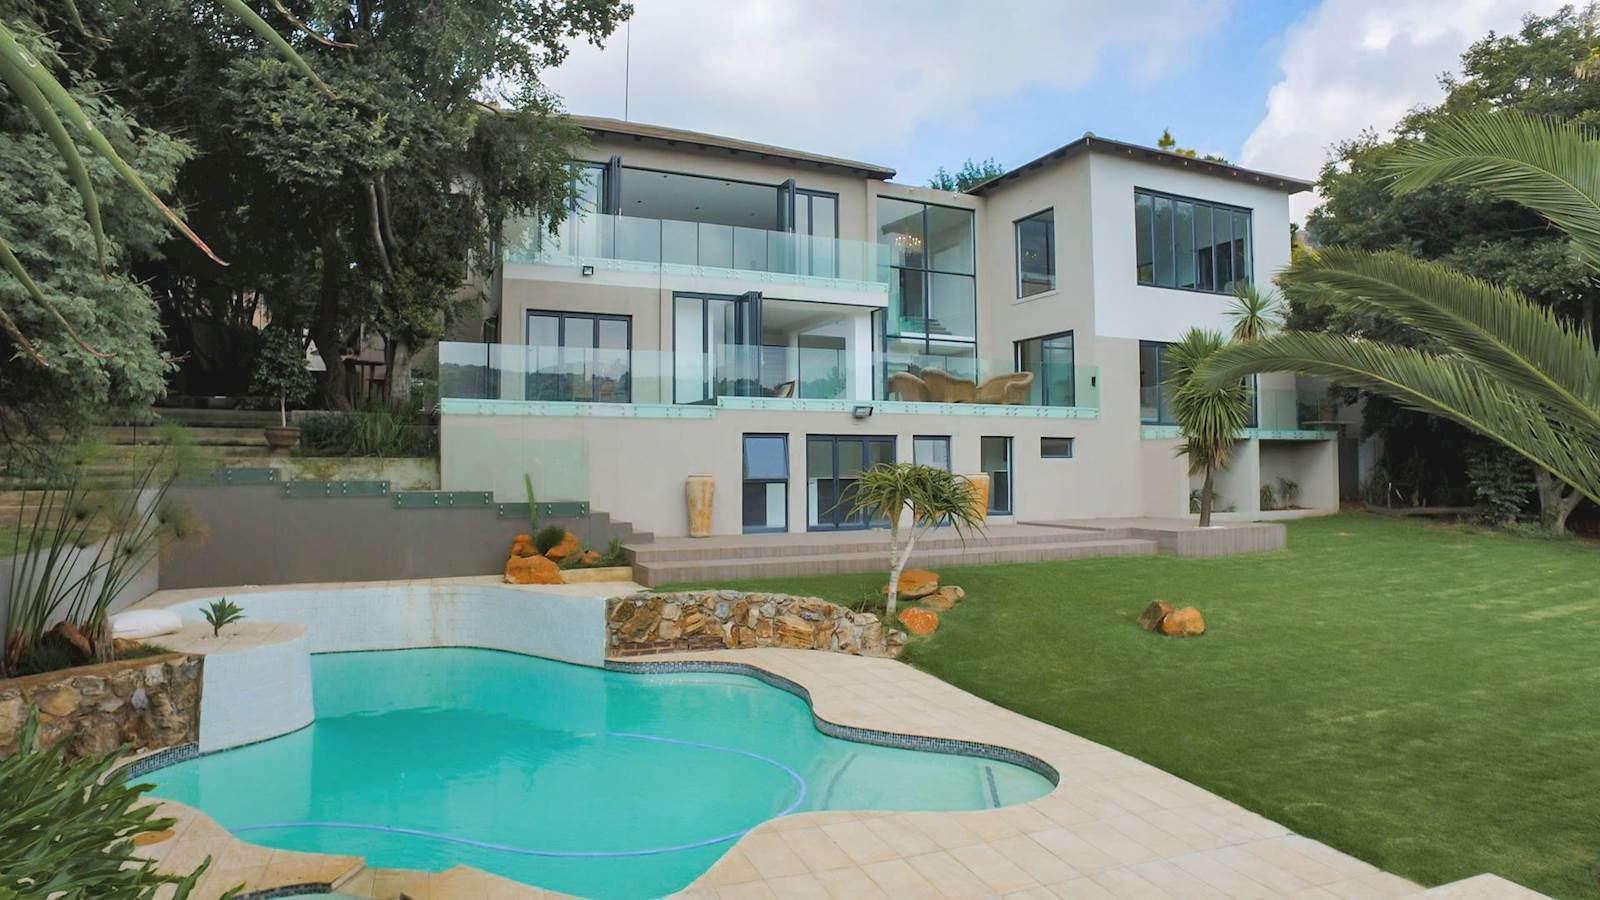 Johannesburg, Glenvista Property  | Houses For Sale Glenvista, Glenvista, House 6 bedrooms property for sale Price:5,900,000